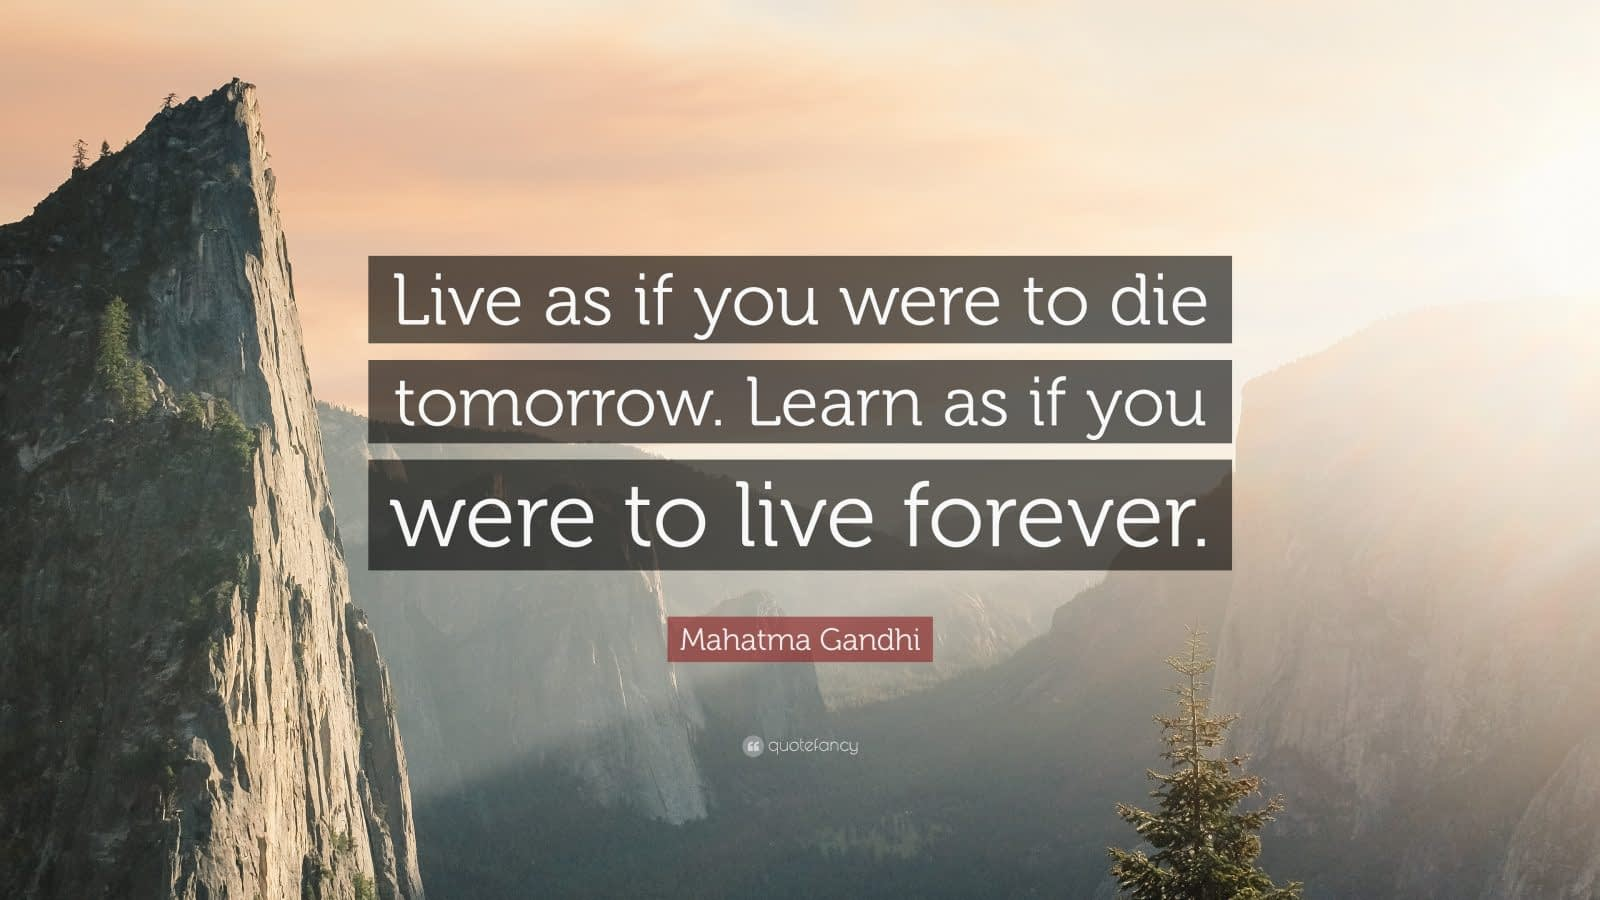 Ghandi-learn-forever-quote